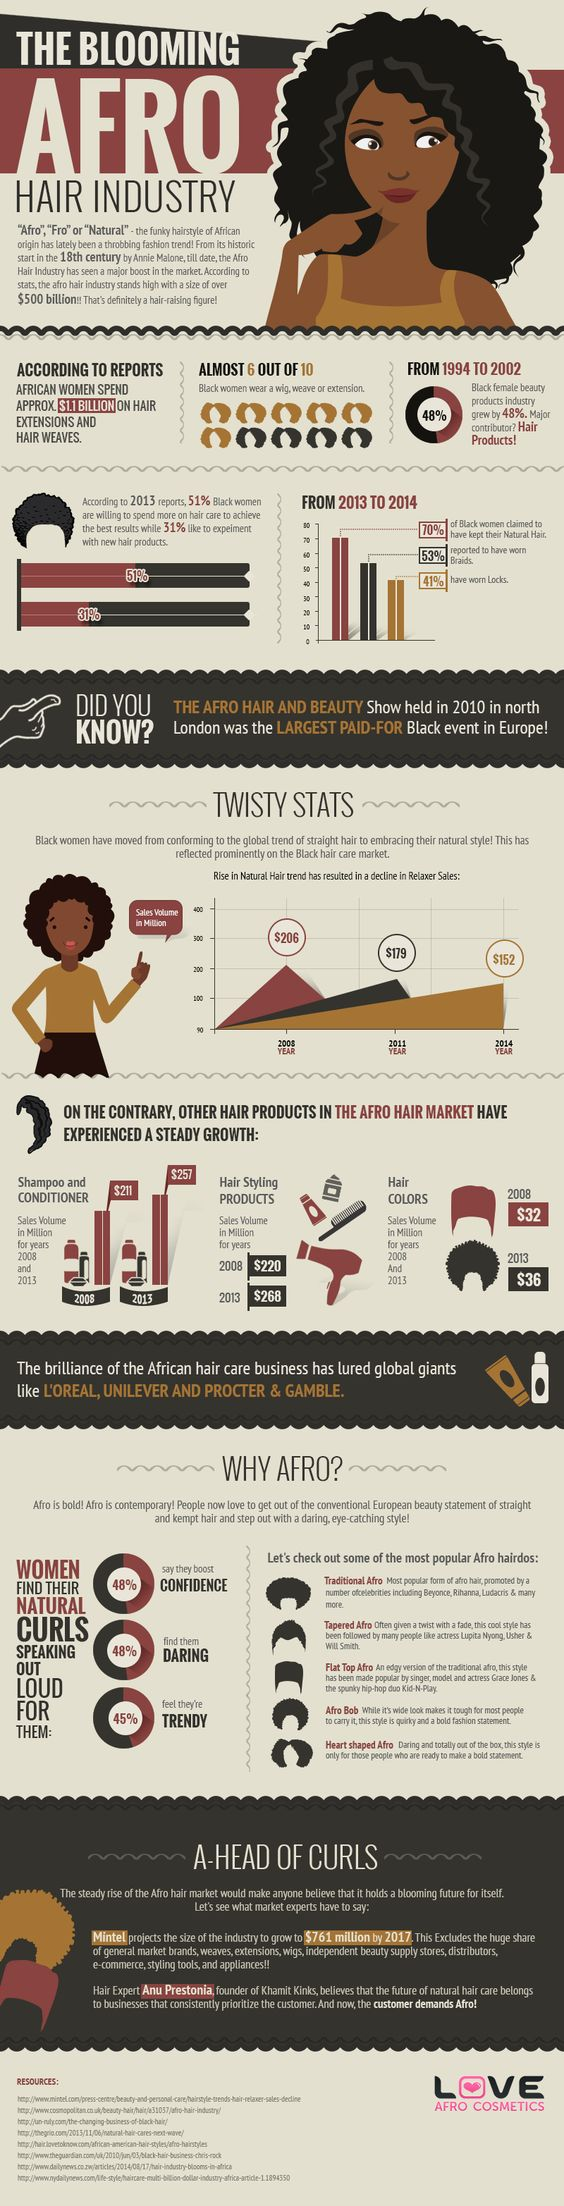 Afro hair industry stats